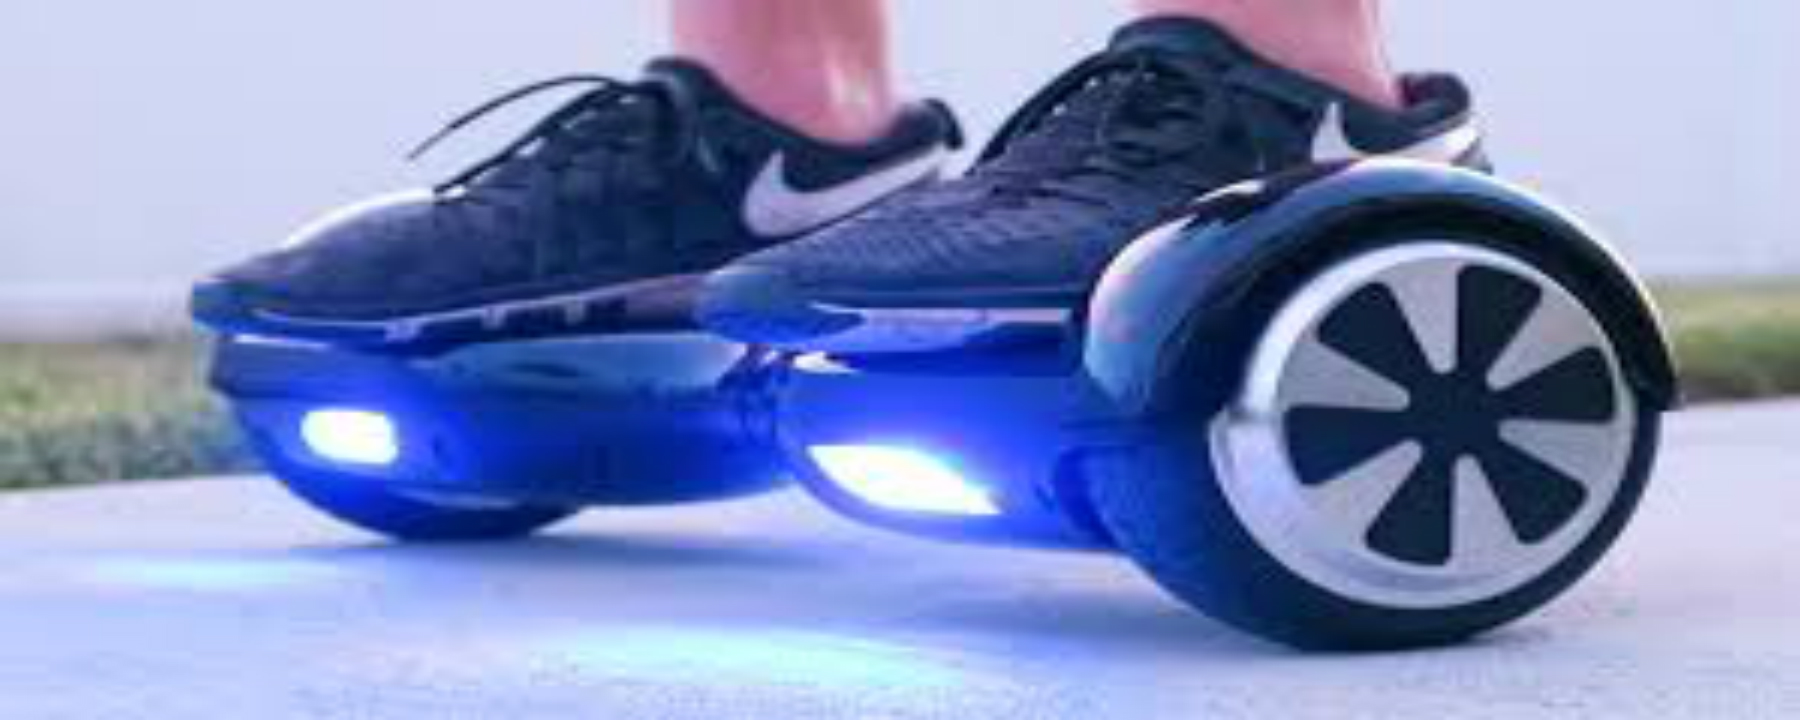 How Much Does A Hoverboard Segway Cost If You Are